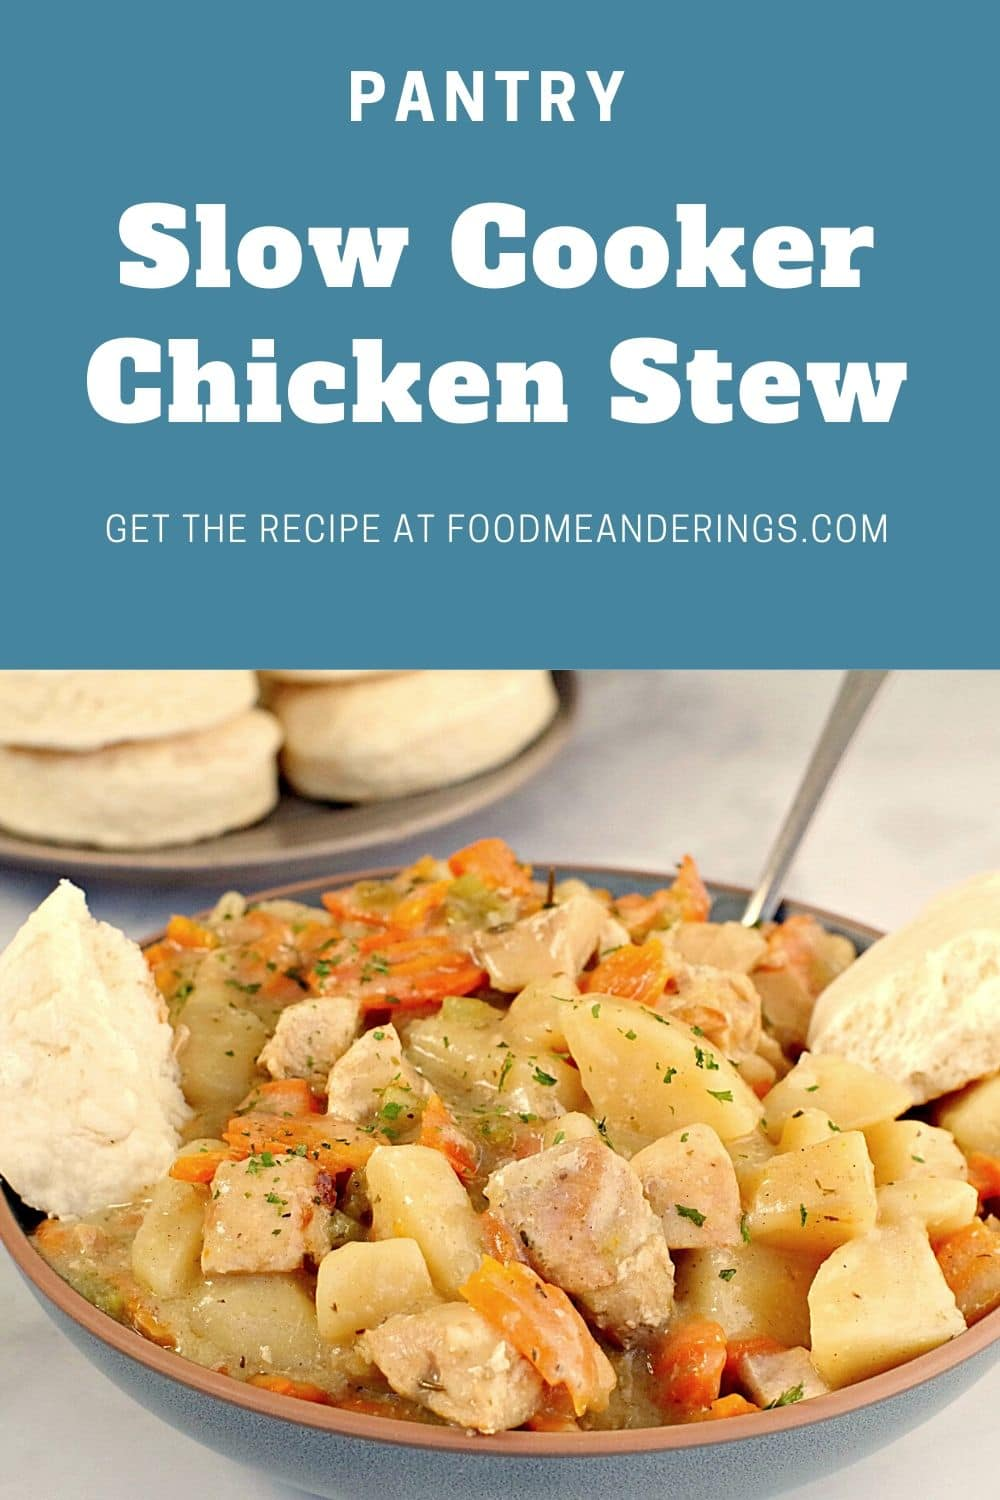 pin with text on top and photos of slow cooker chicken stew with biscuits